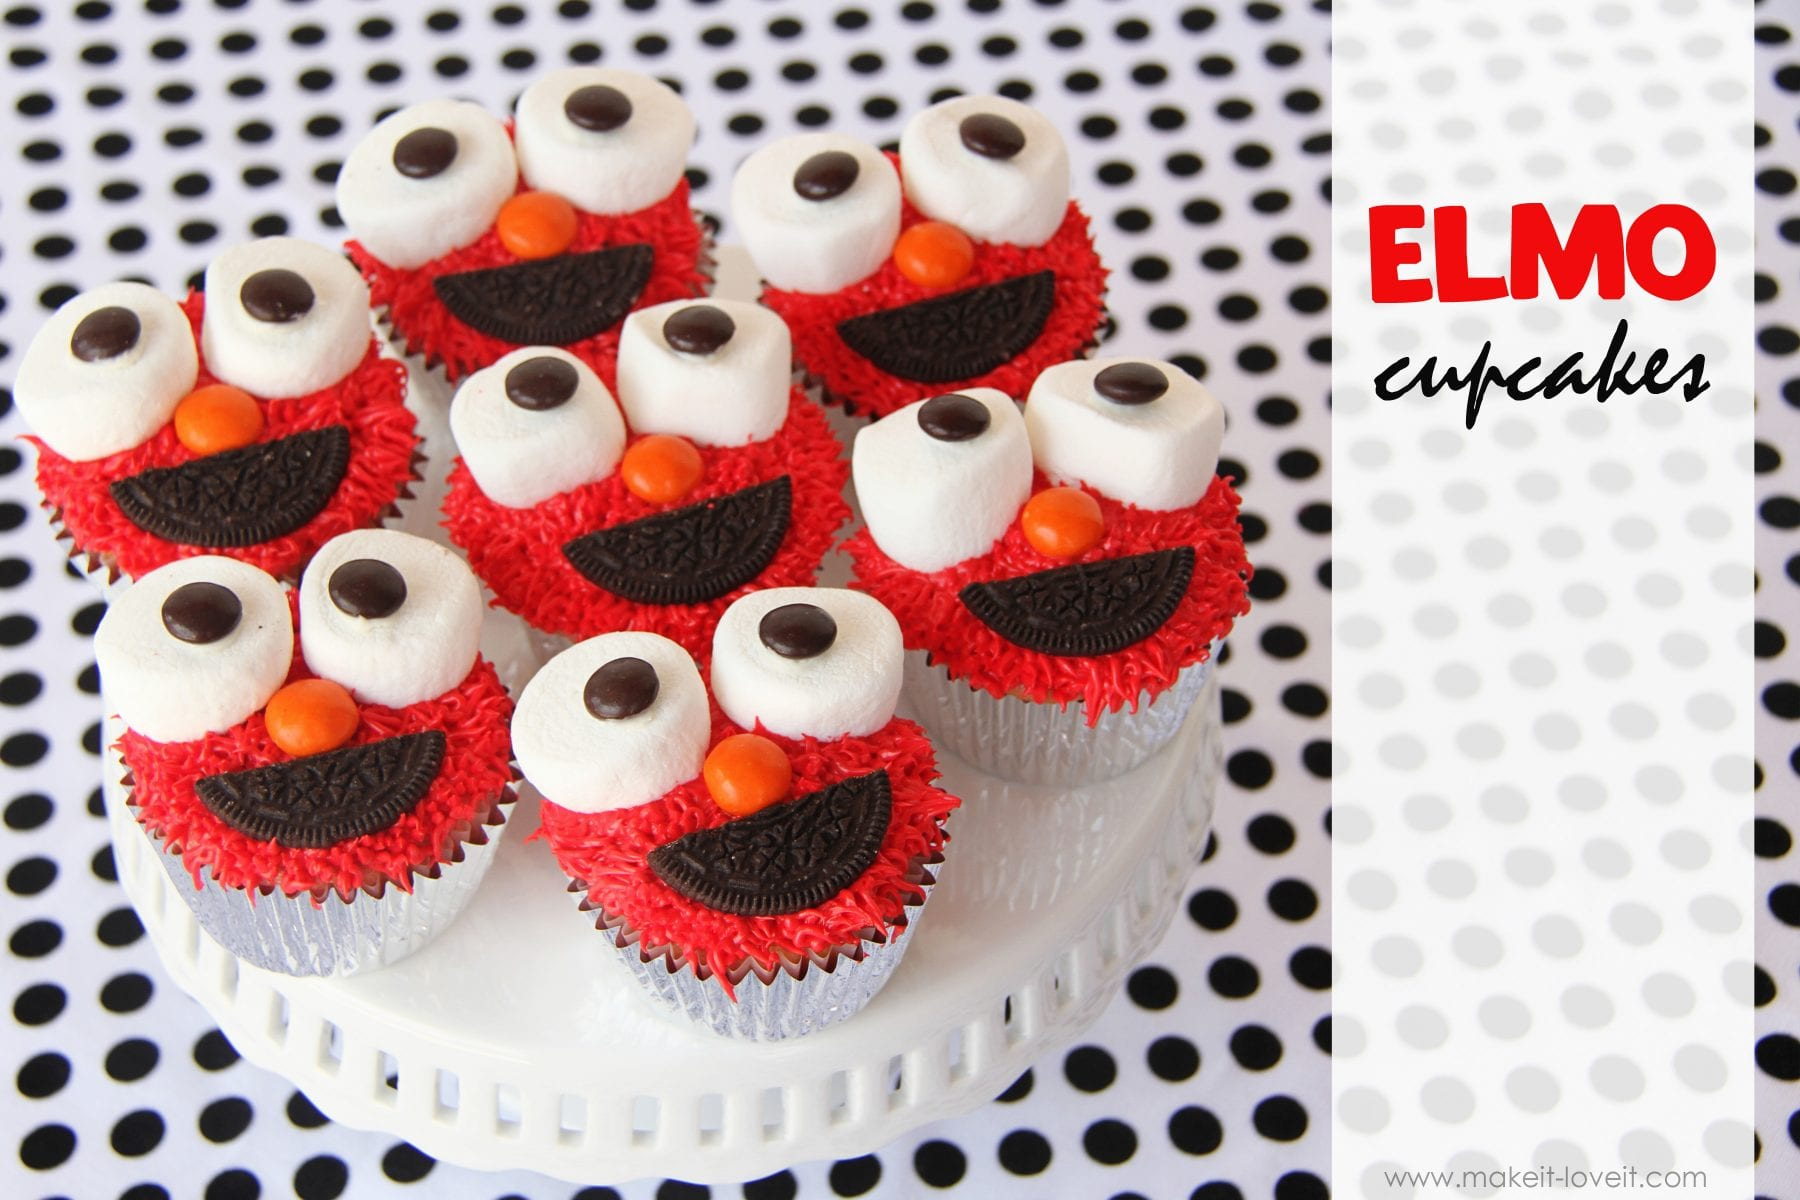 Elmo Cupcakes……you know you want one! :)